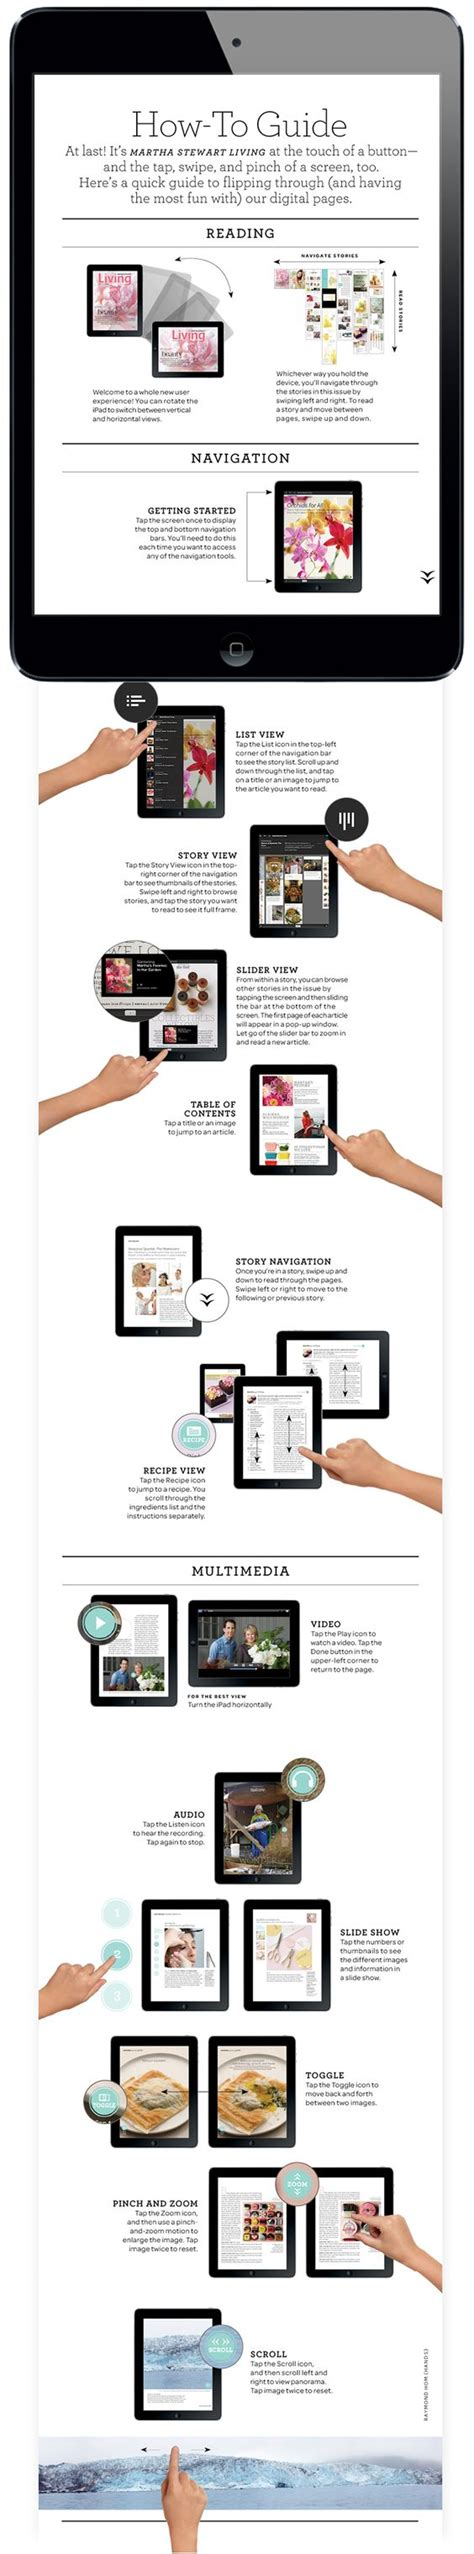 ipad layout design guidelines app design typography and layout design on pinterest